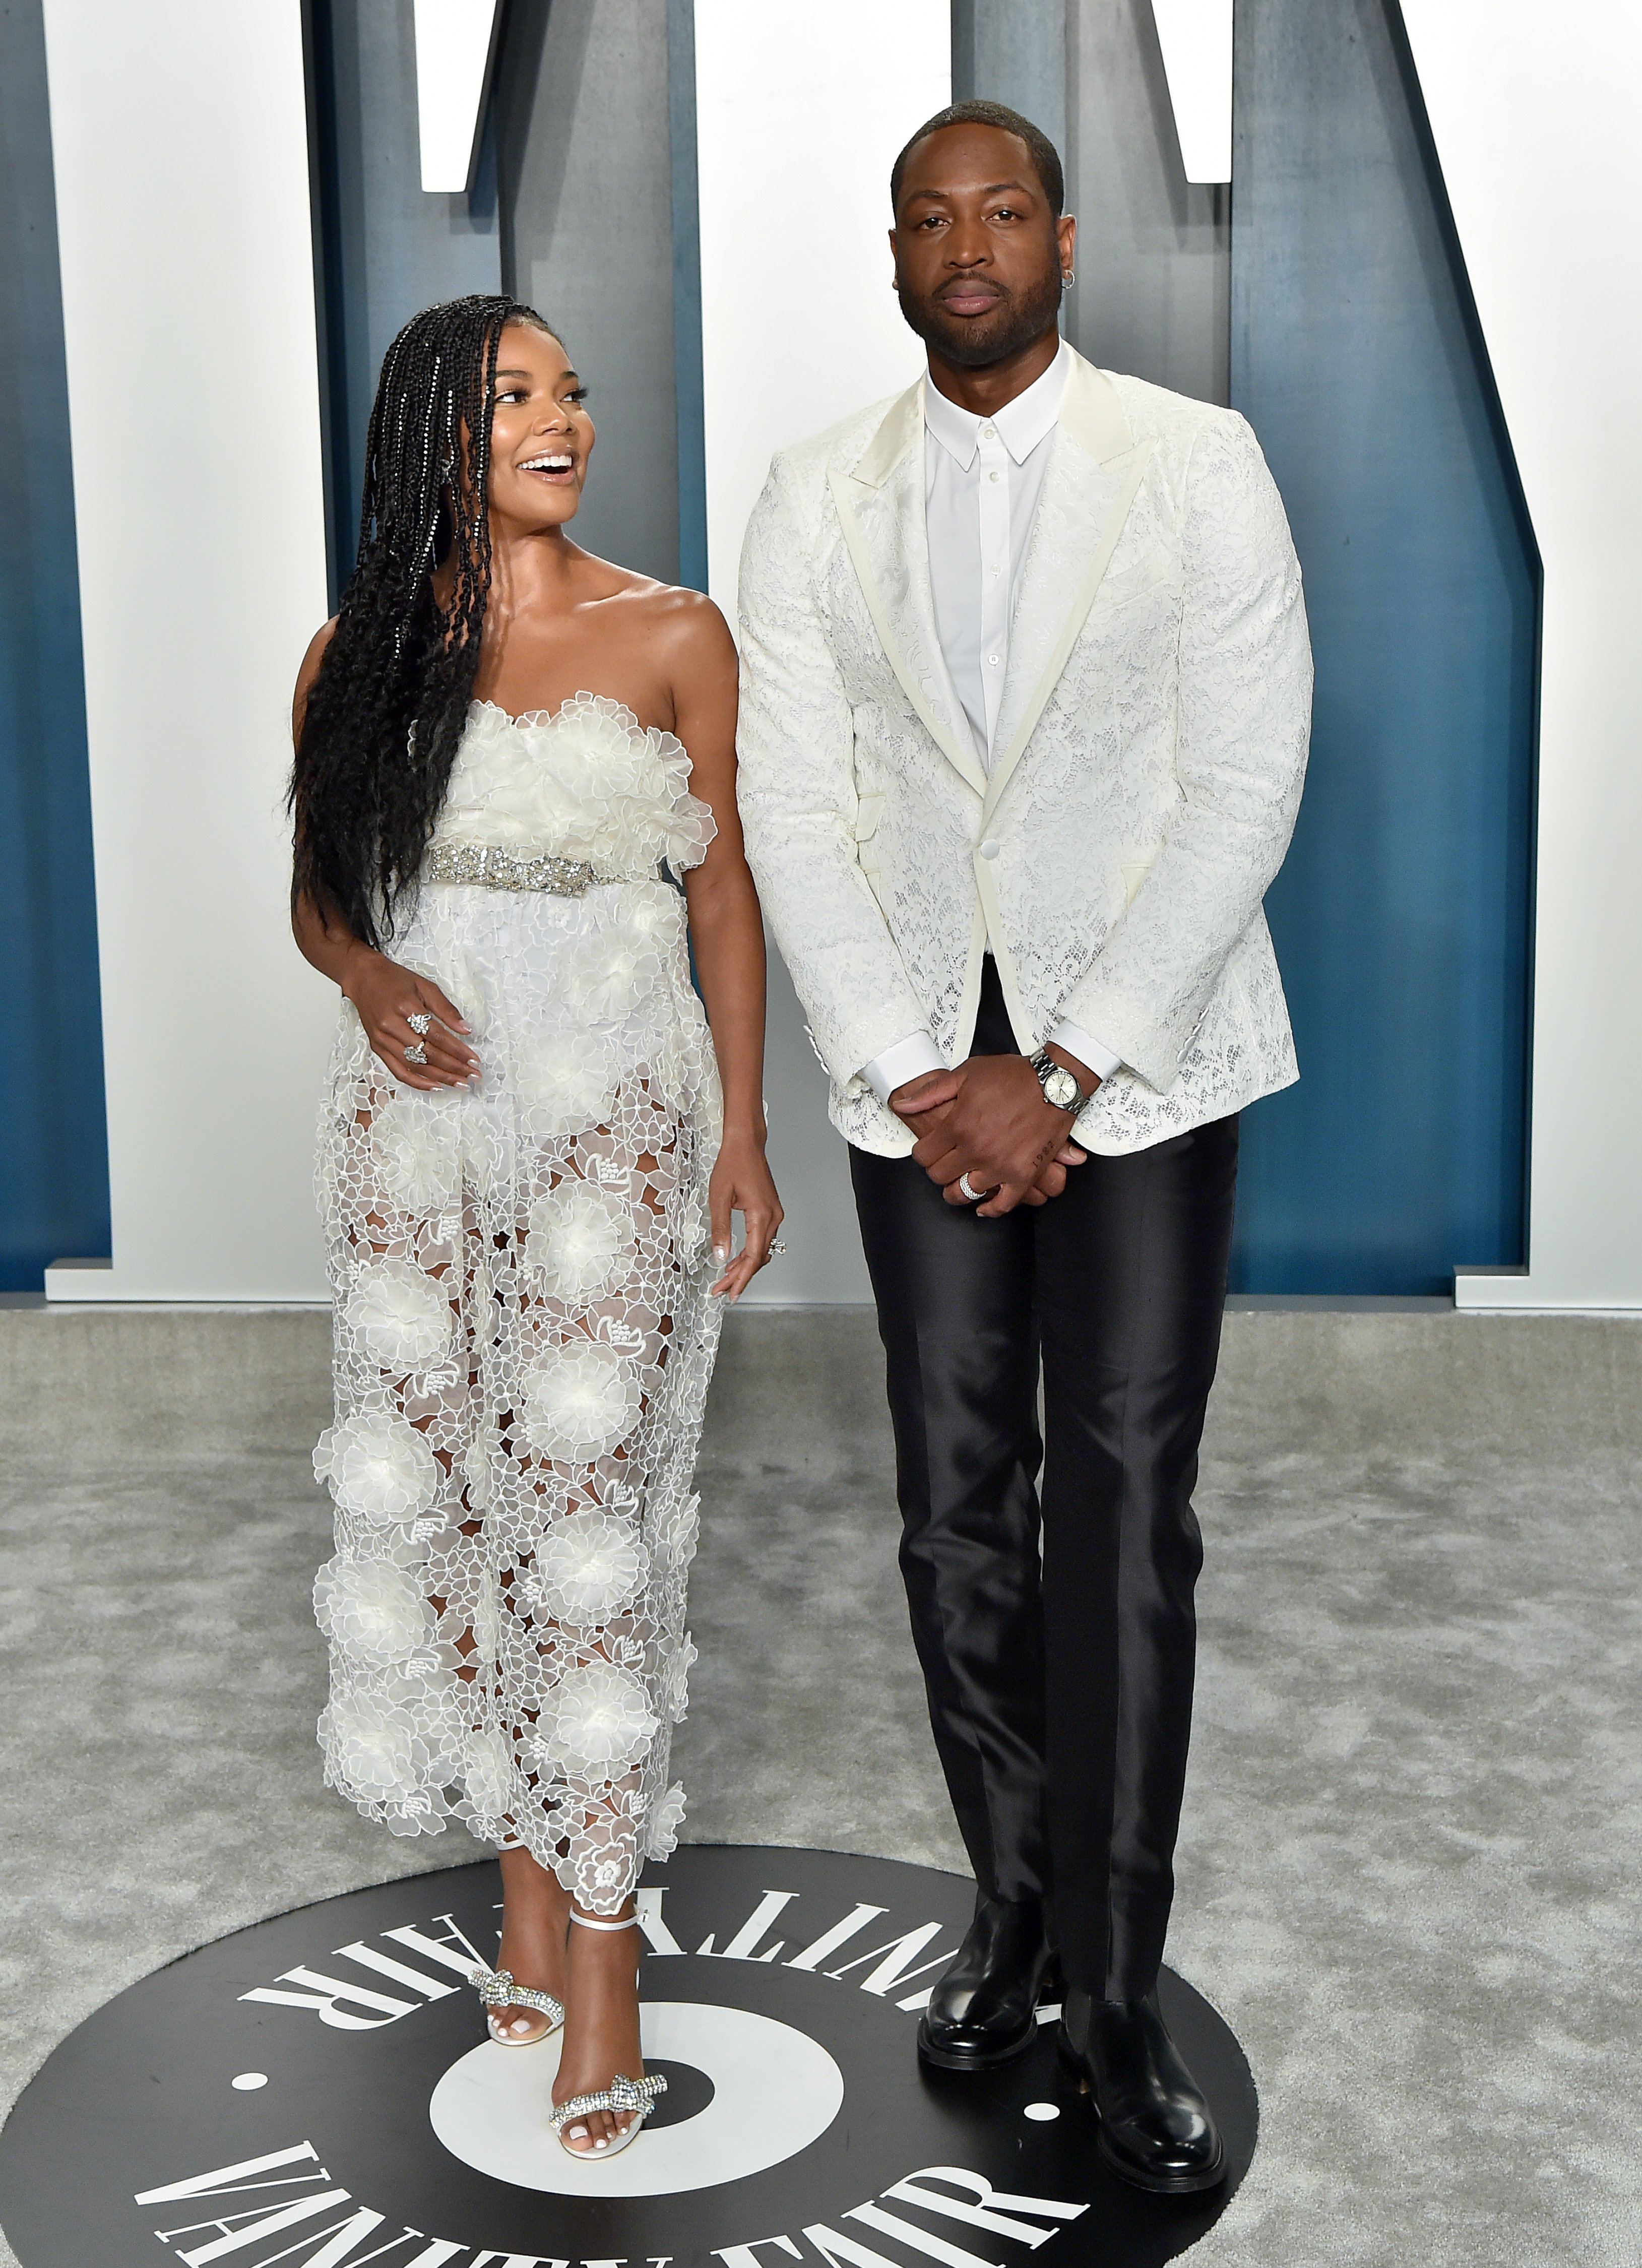 Gabrielle Union and Dwyane Wade at the Vanity Fair Oscar Party, 2020 in Beverly Hills, California | Source: Getty Images